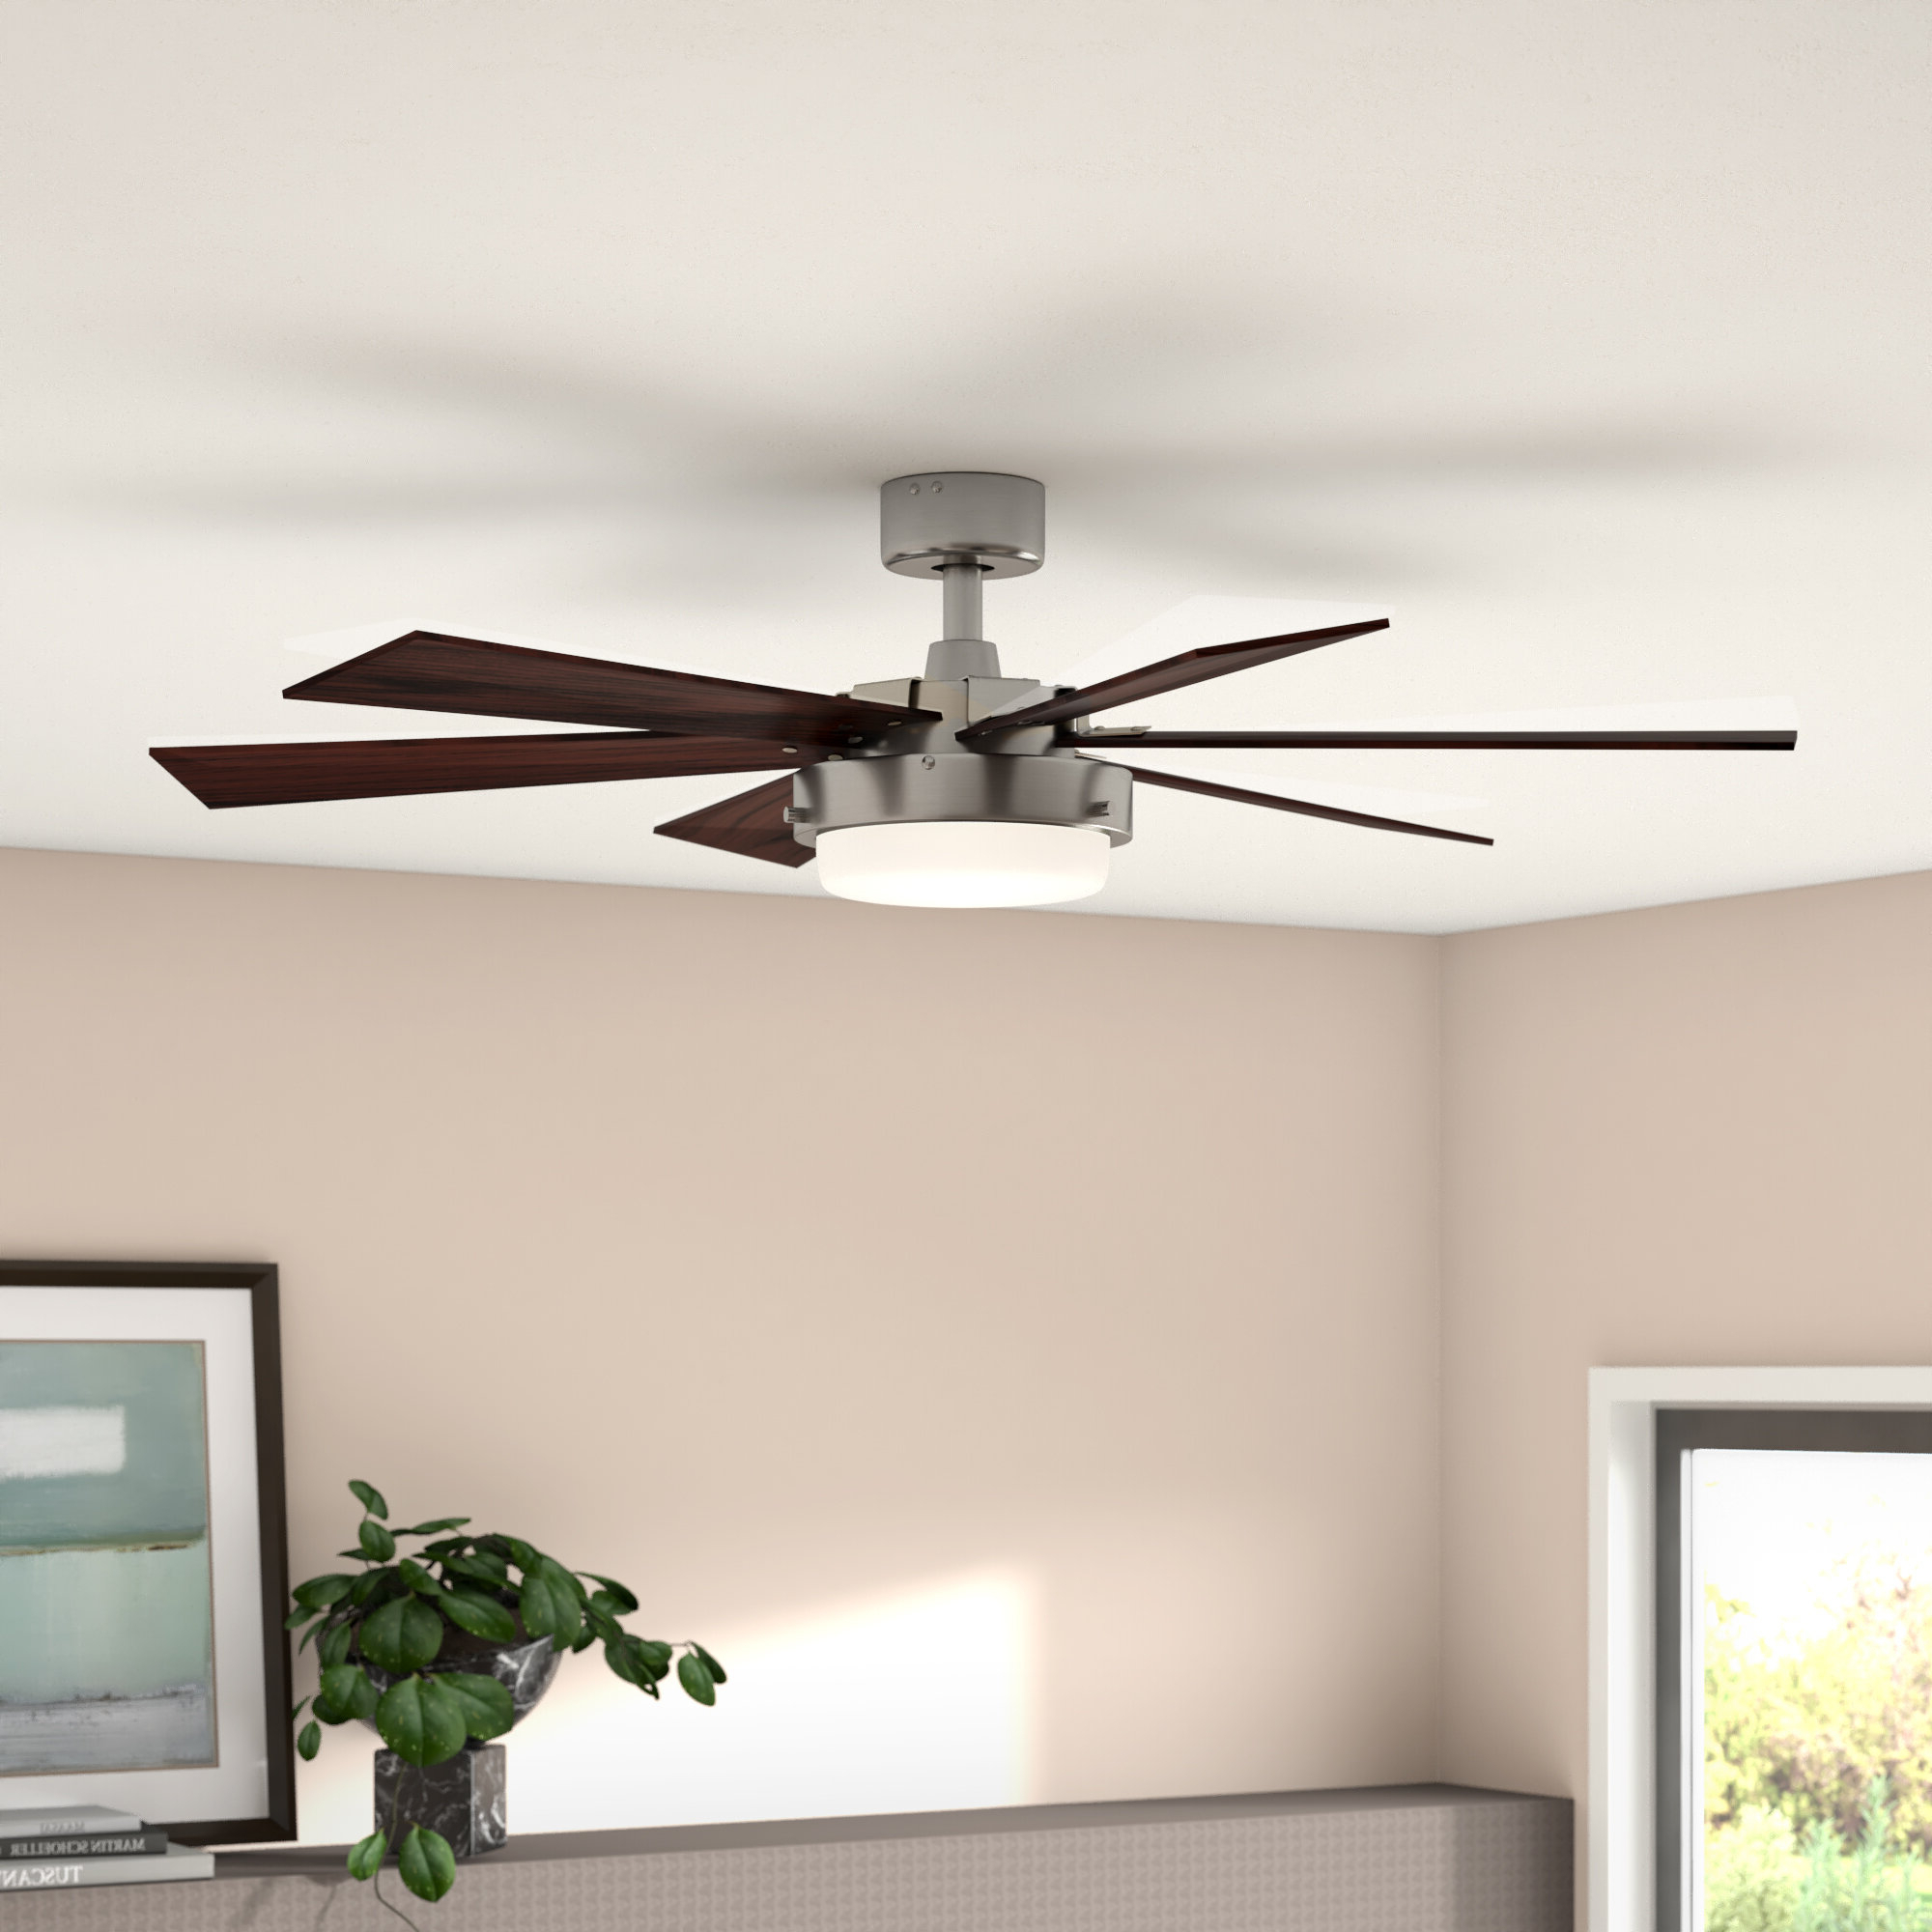 "Cillian 6 Blade Ceiling Fans In Best And Newest 52"" Corsa 6 Blade Ceiling Fan, Light Kit Included (View 5 of 20)"